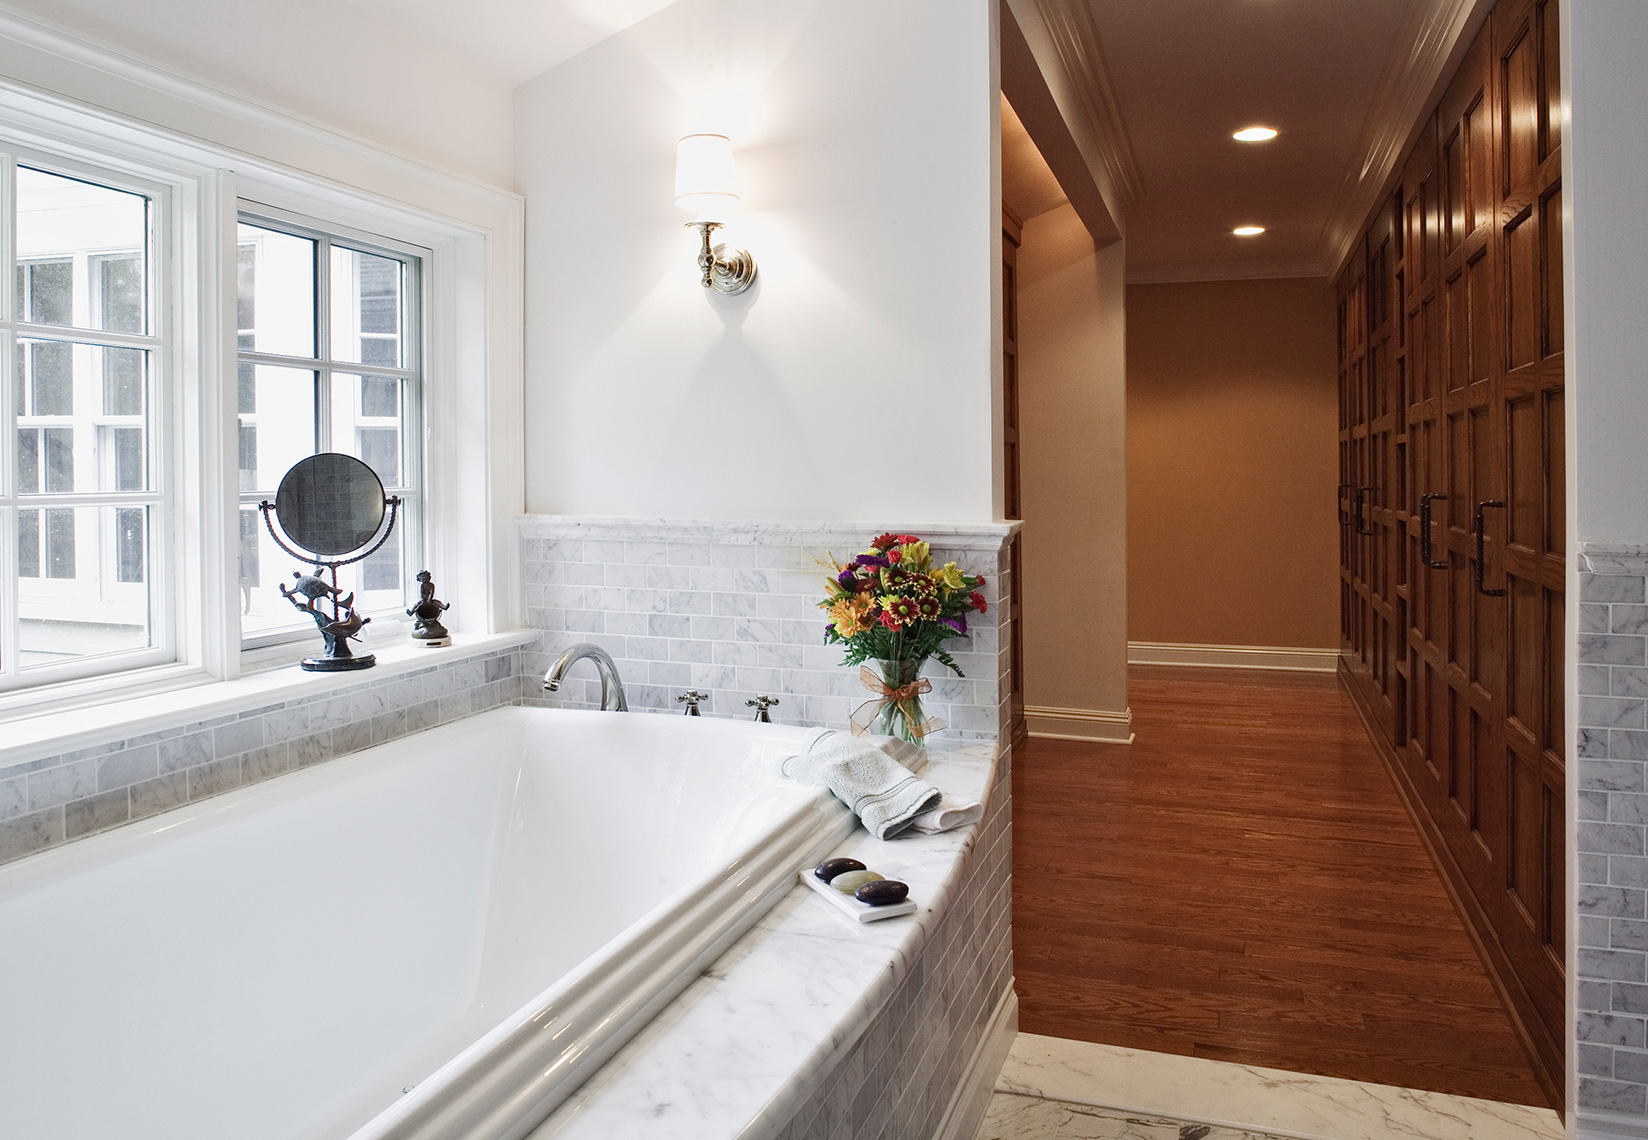 custom cabinets nj-Master Bath Dressing Room Traditional Woodwork and Trim work Crown Moulding